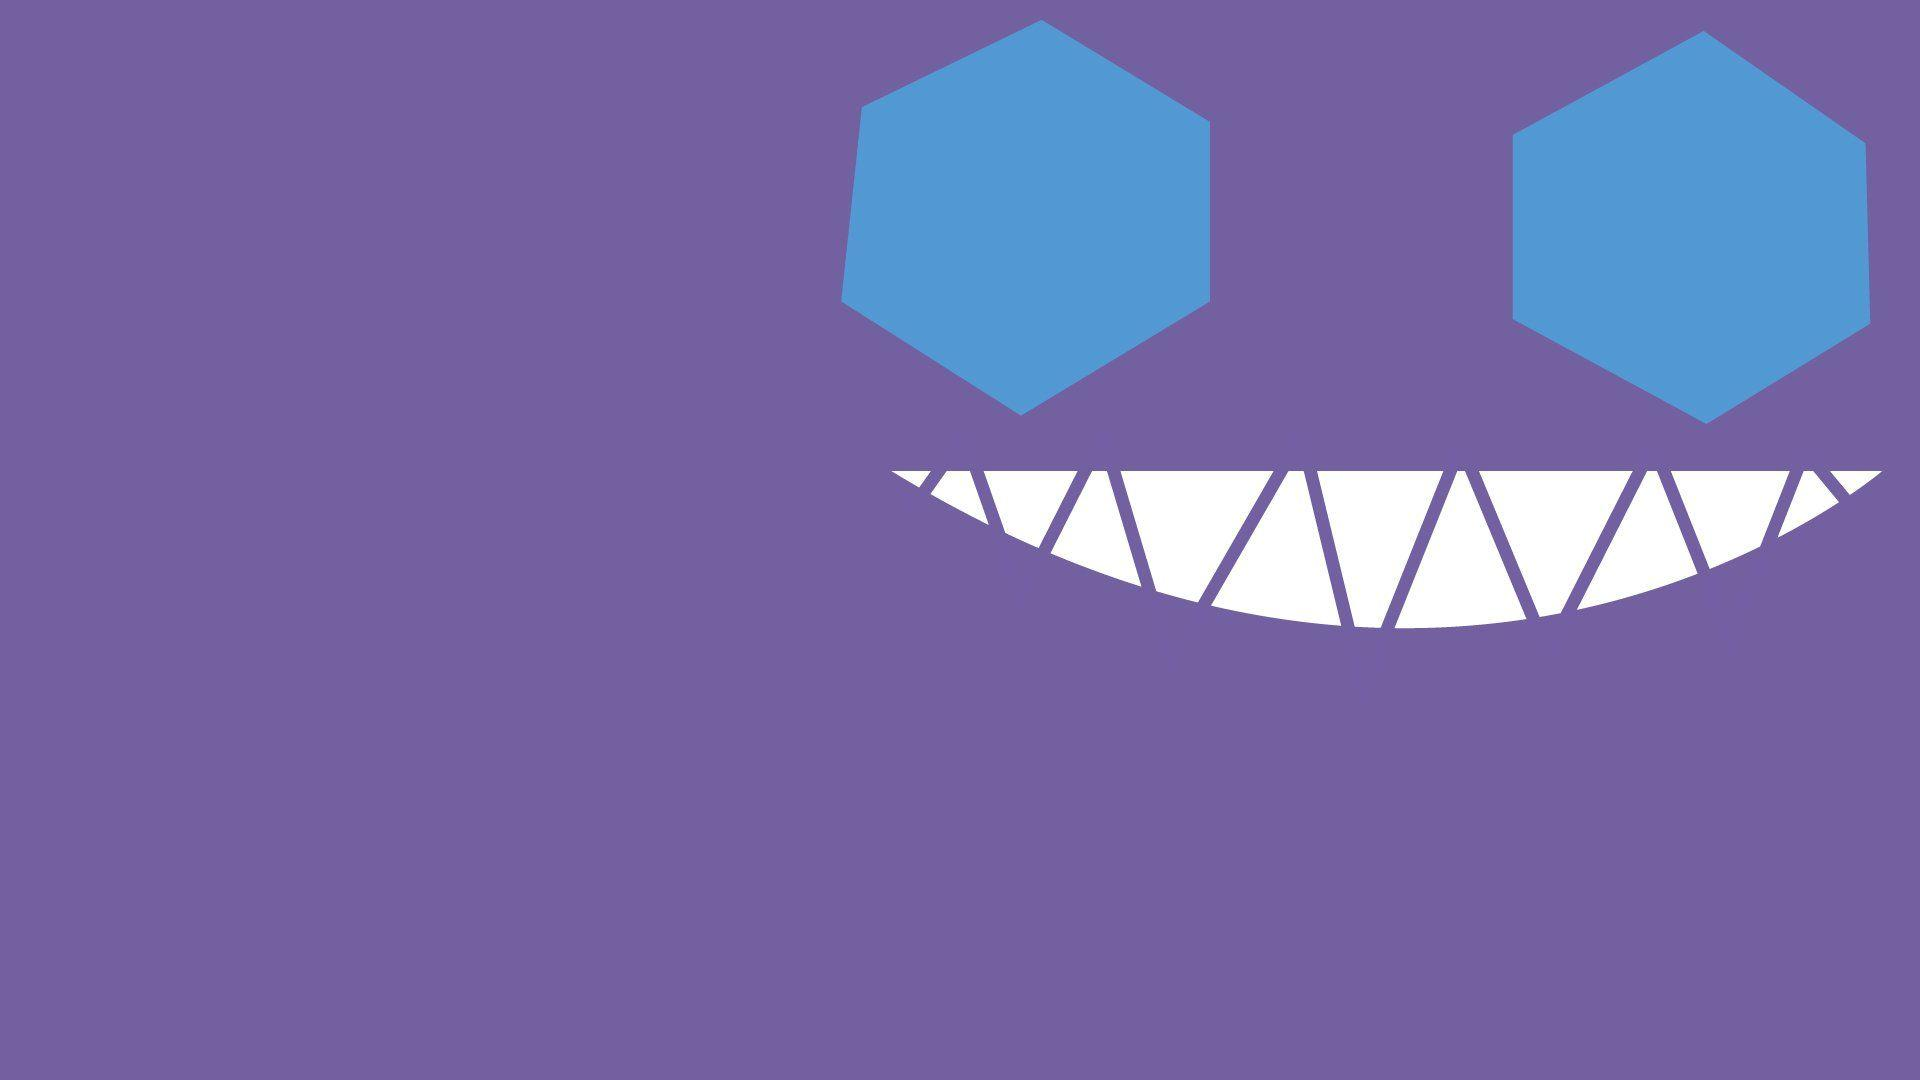 9 Sableye (Pokémon) HD Wallpapers | Background Images - Wallpaper Abyss